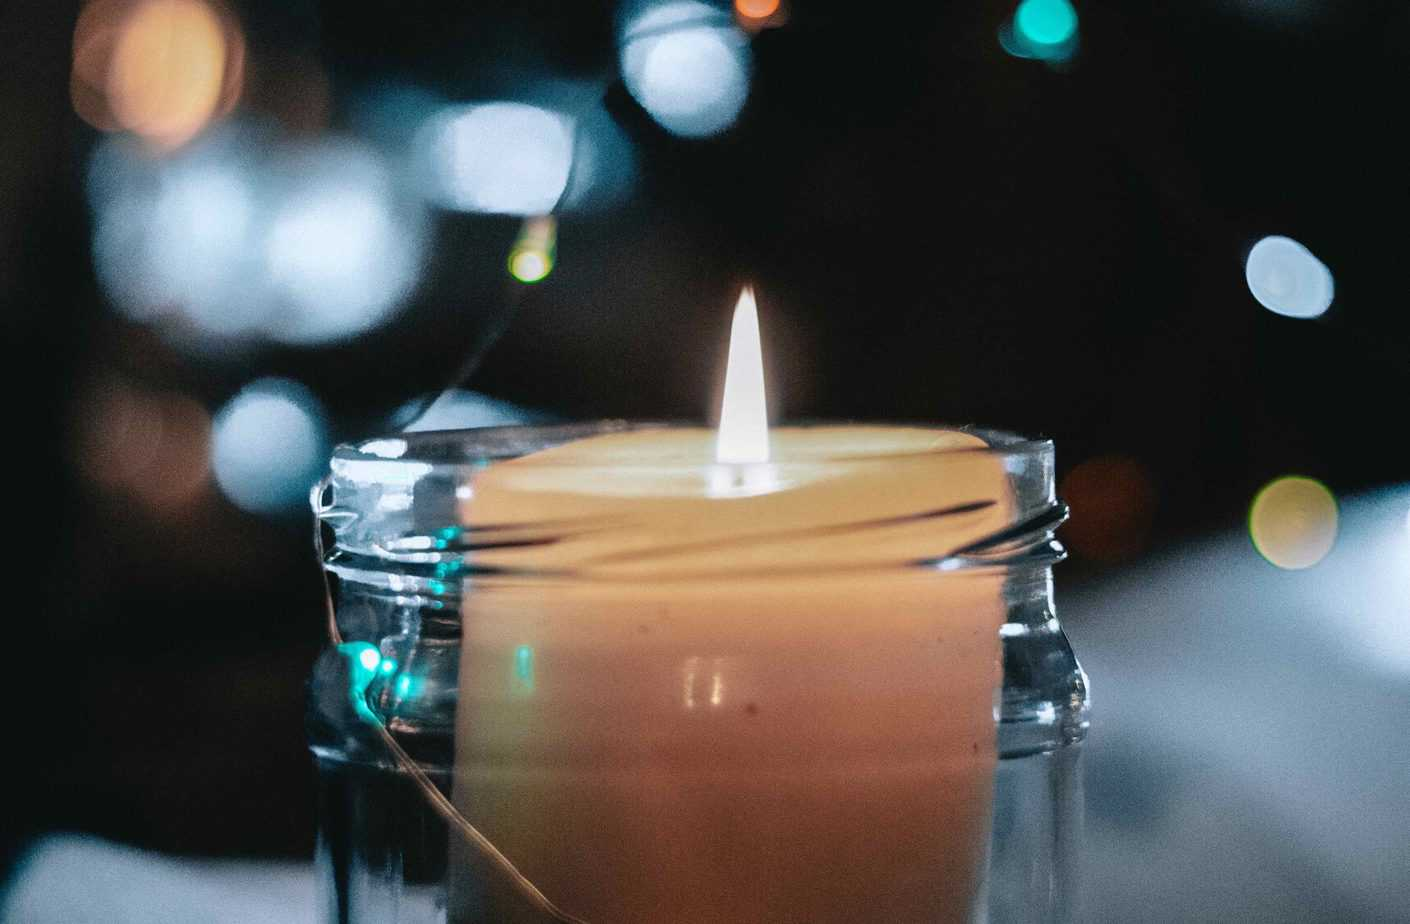 Keys to surviving the holidays, especially if you're grieving